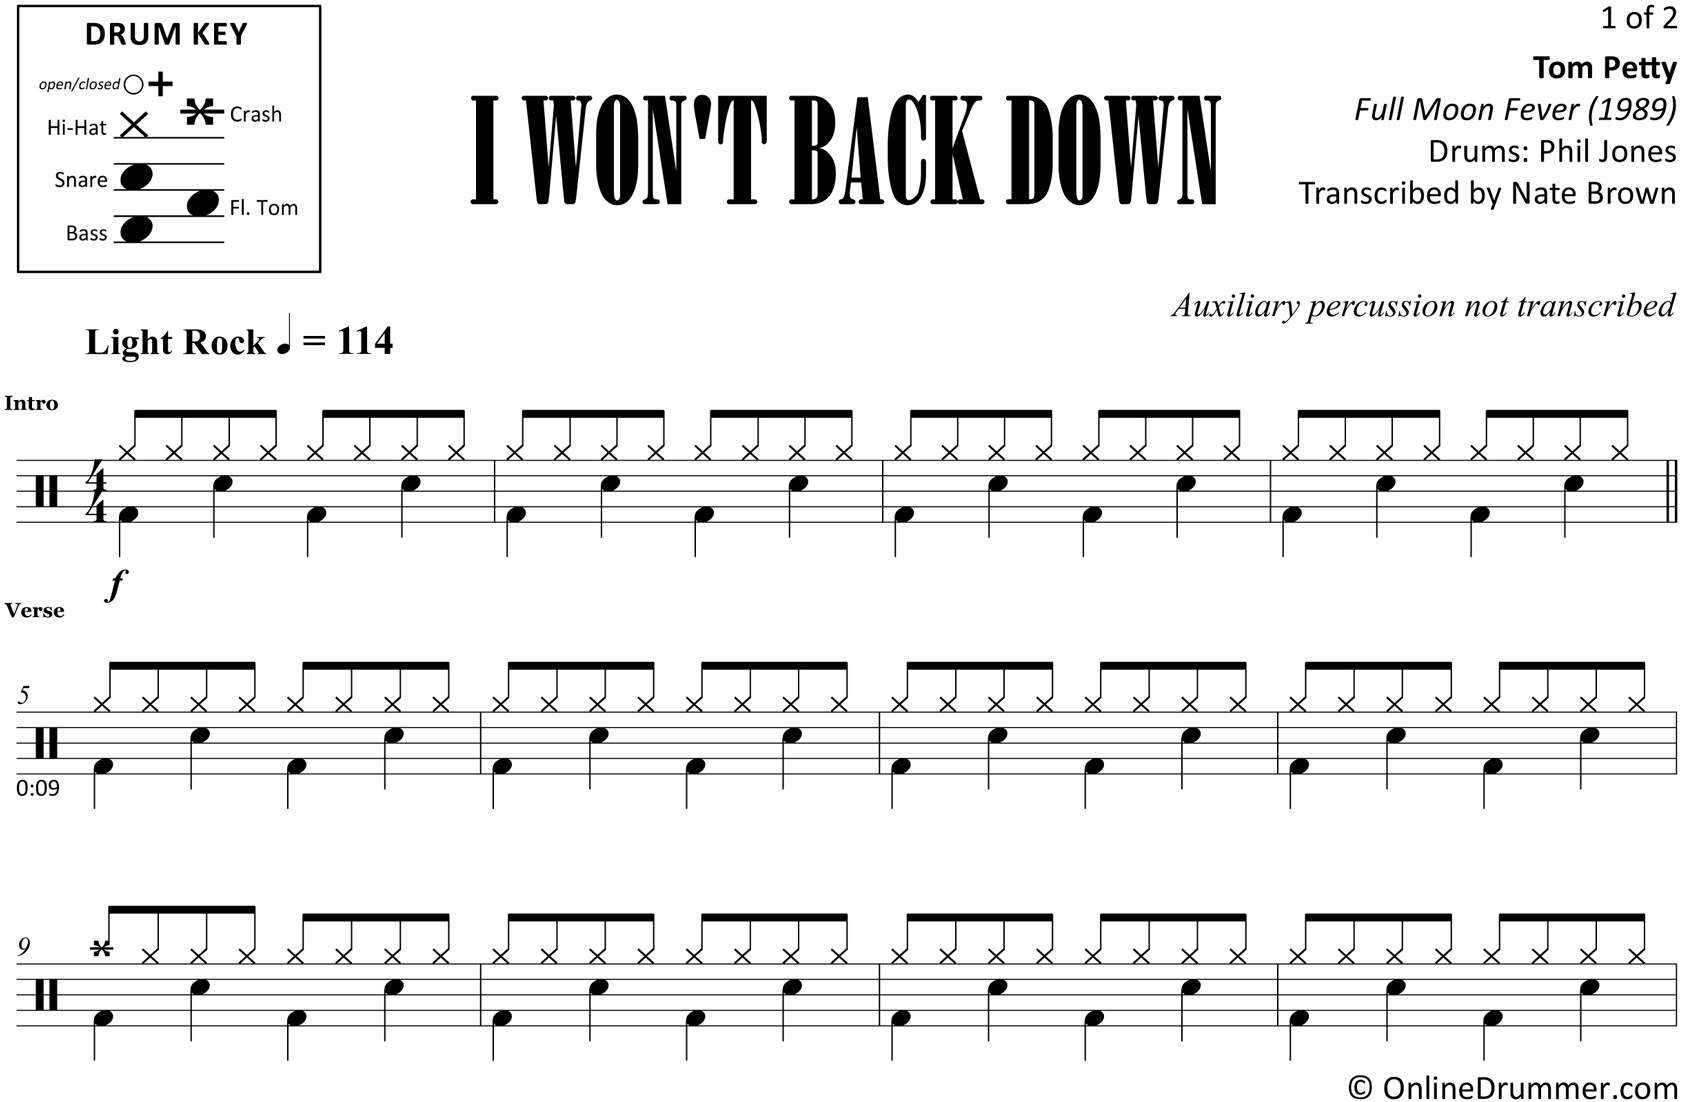 I Won't Back Down - Tom Petty - Drum Sheet Music